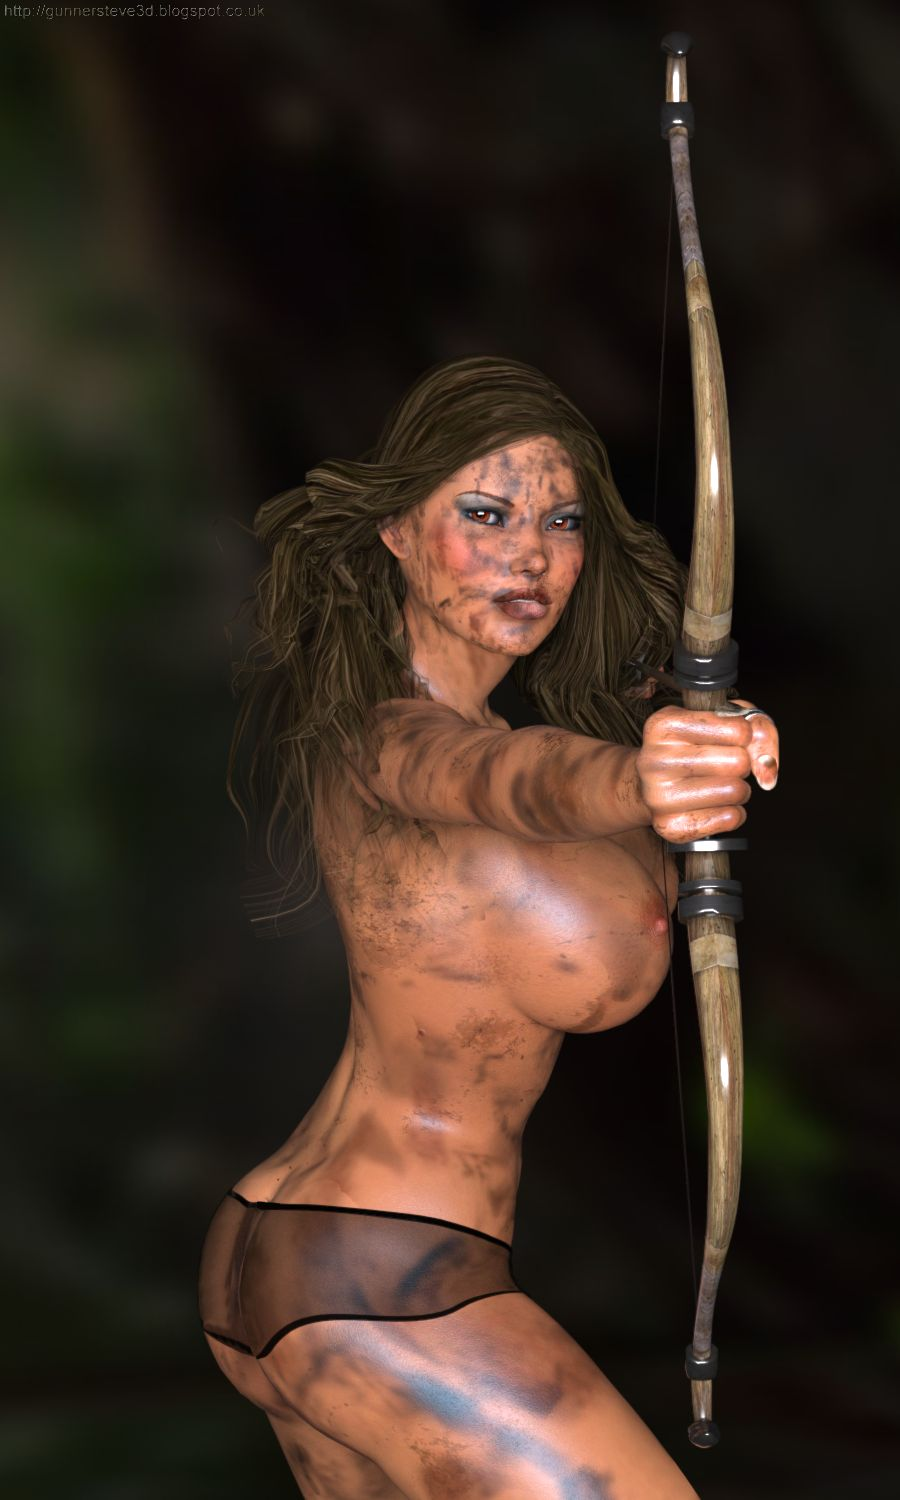 Big tits 3d lara croft pic nsfw films